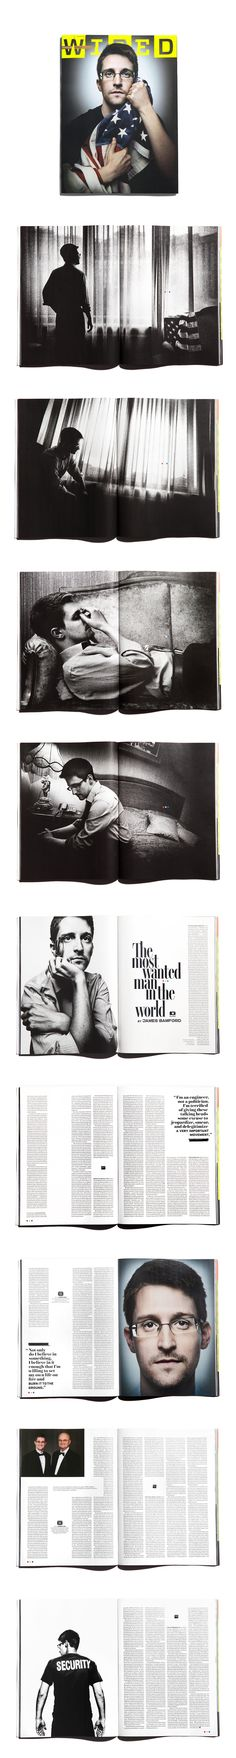 WIRED 22.09 Edward Snowden: The Most Wanted Man in the World | Editor in Chief: Scott Dadich | Creative Director: Billy Sorrentino | Director of Photography: Patrick Witty | Photographer: Platon